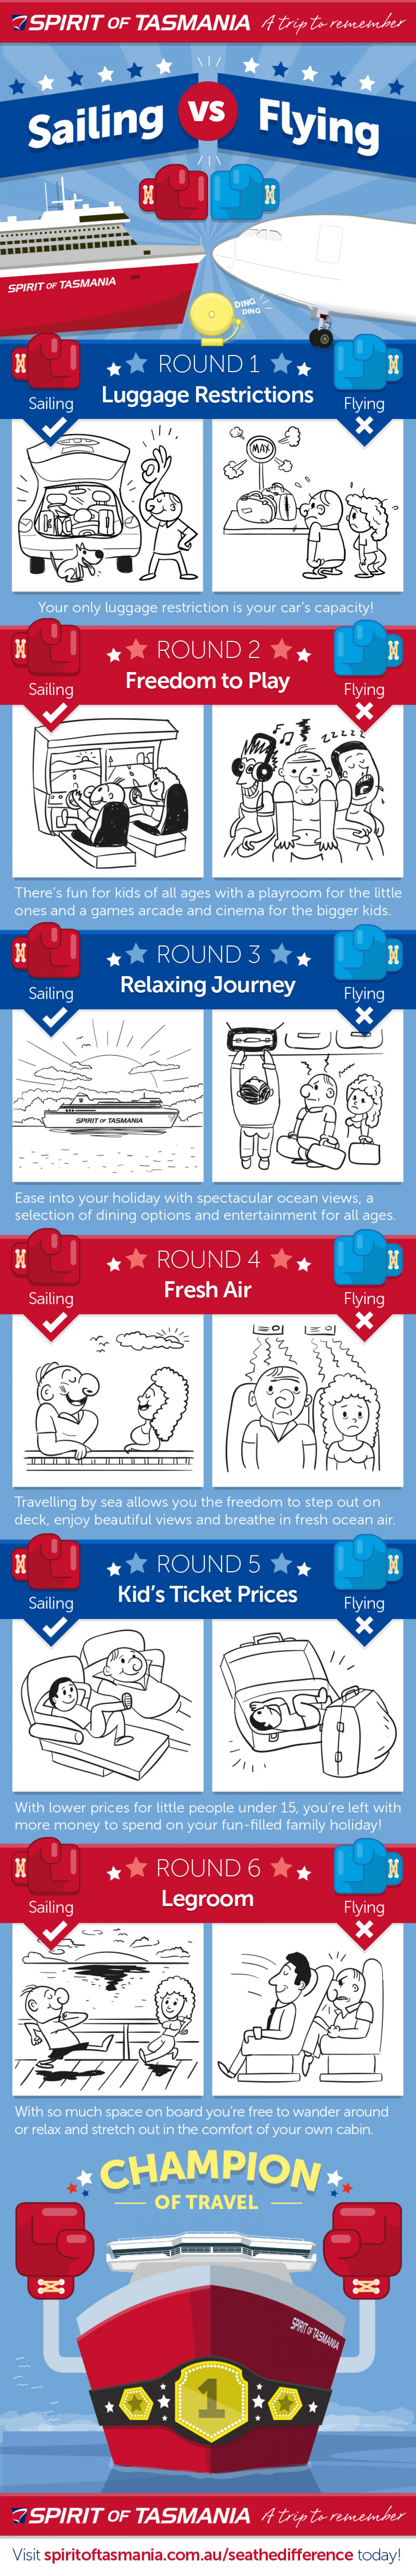 Sailing vs. Flying Infographic